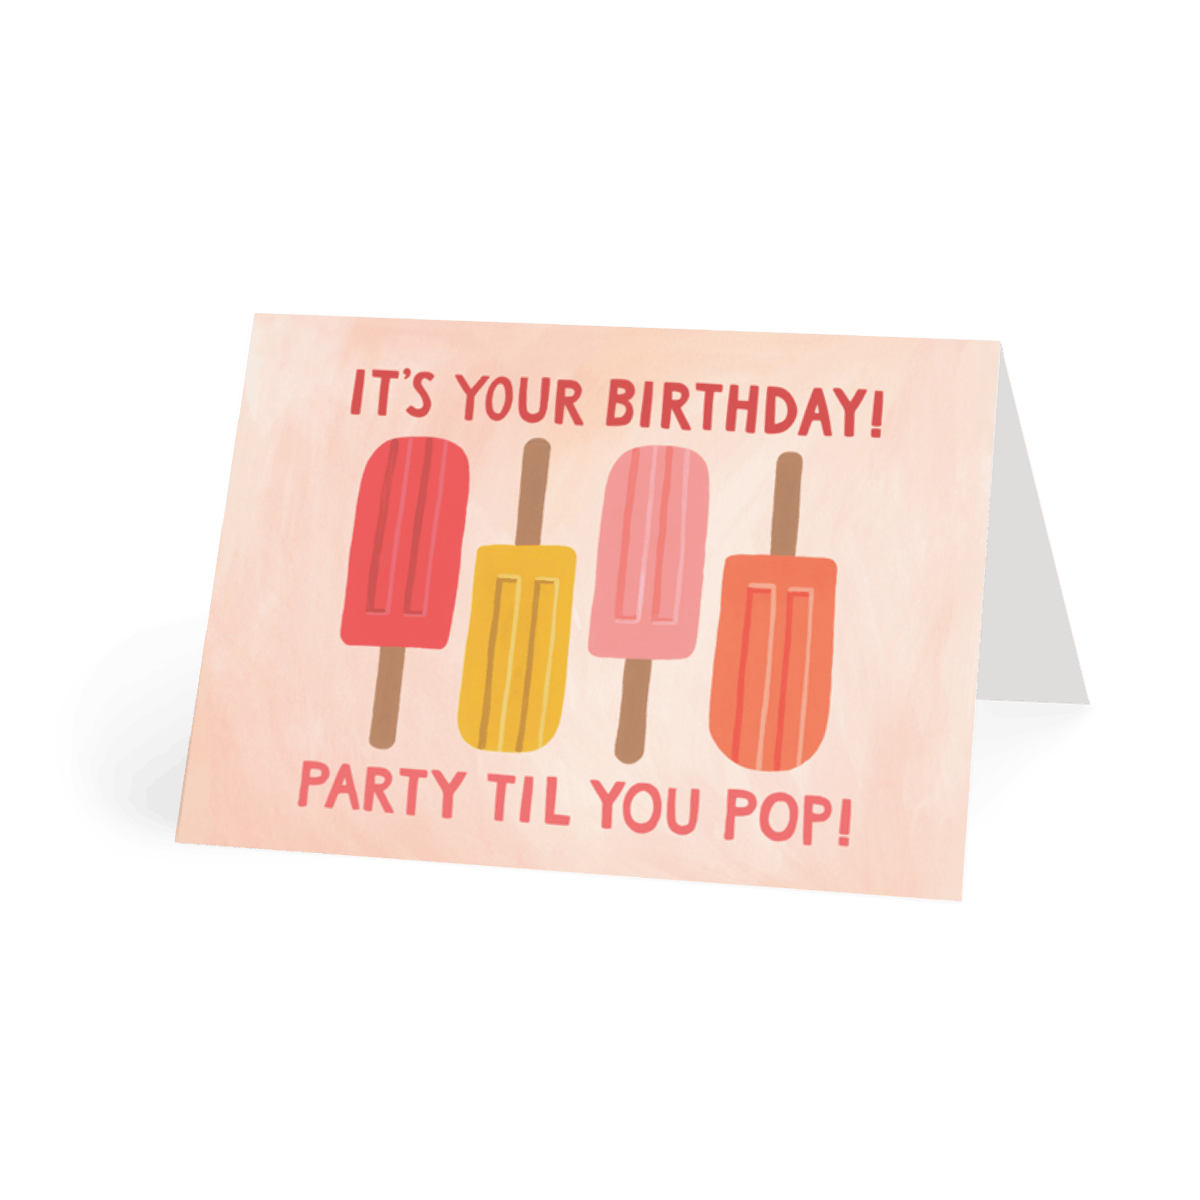 Https%3a%2f%2fwww.papier.com%2fproduct image%2f53511%2f14%2fpopsicle birthday 12877 front 1542021410.png?ixlib=rb 1.1